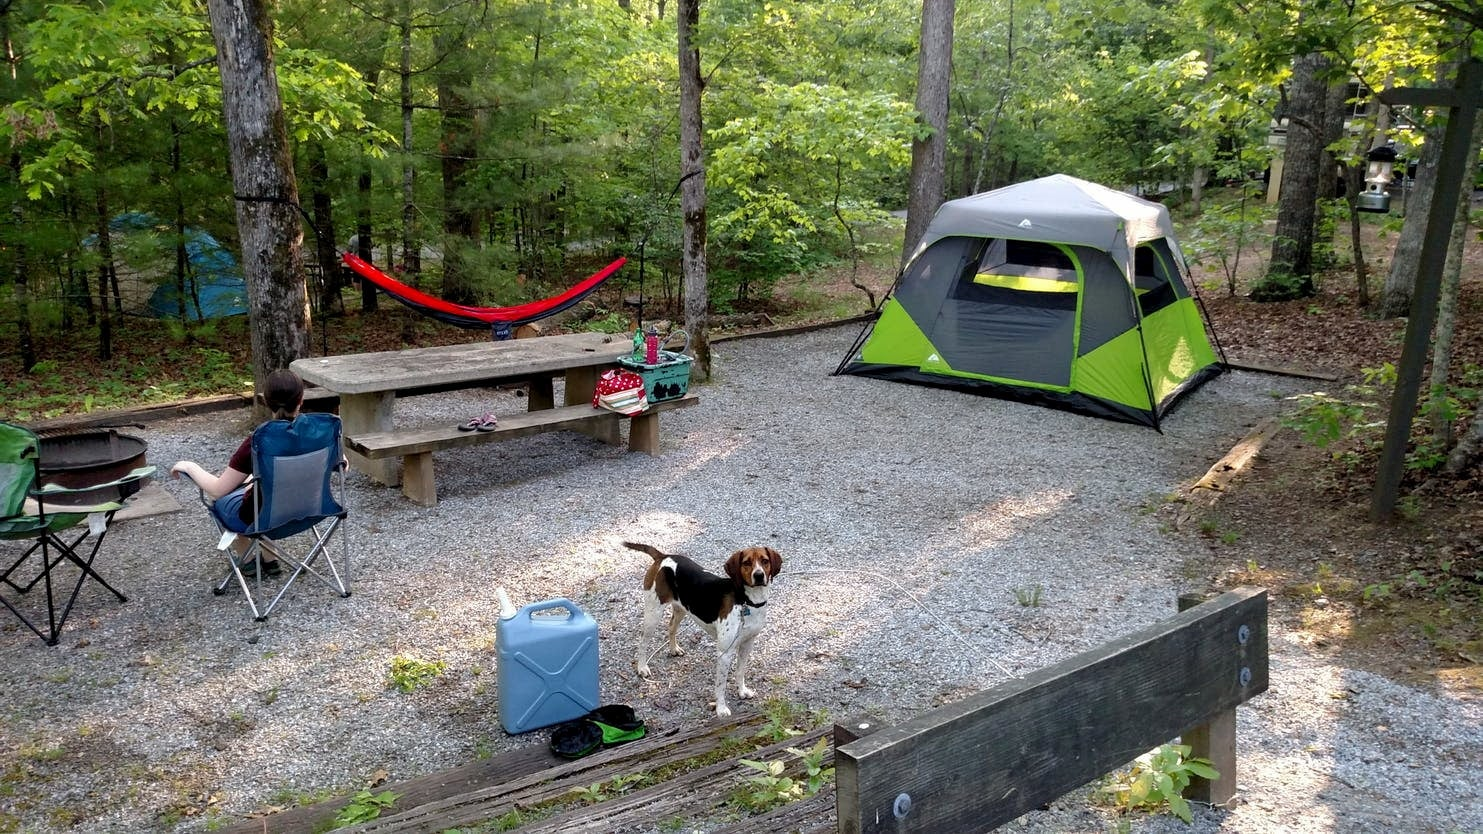 Dog standing in front of forested campsite with tent and hammock.